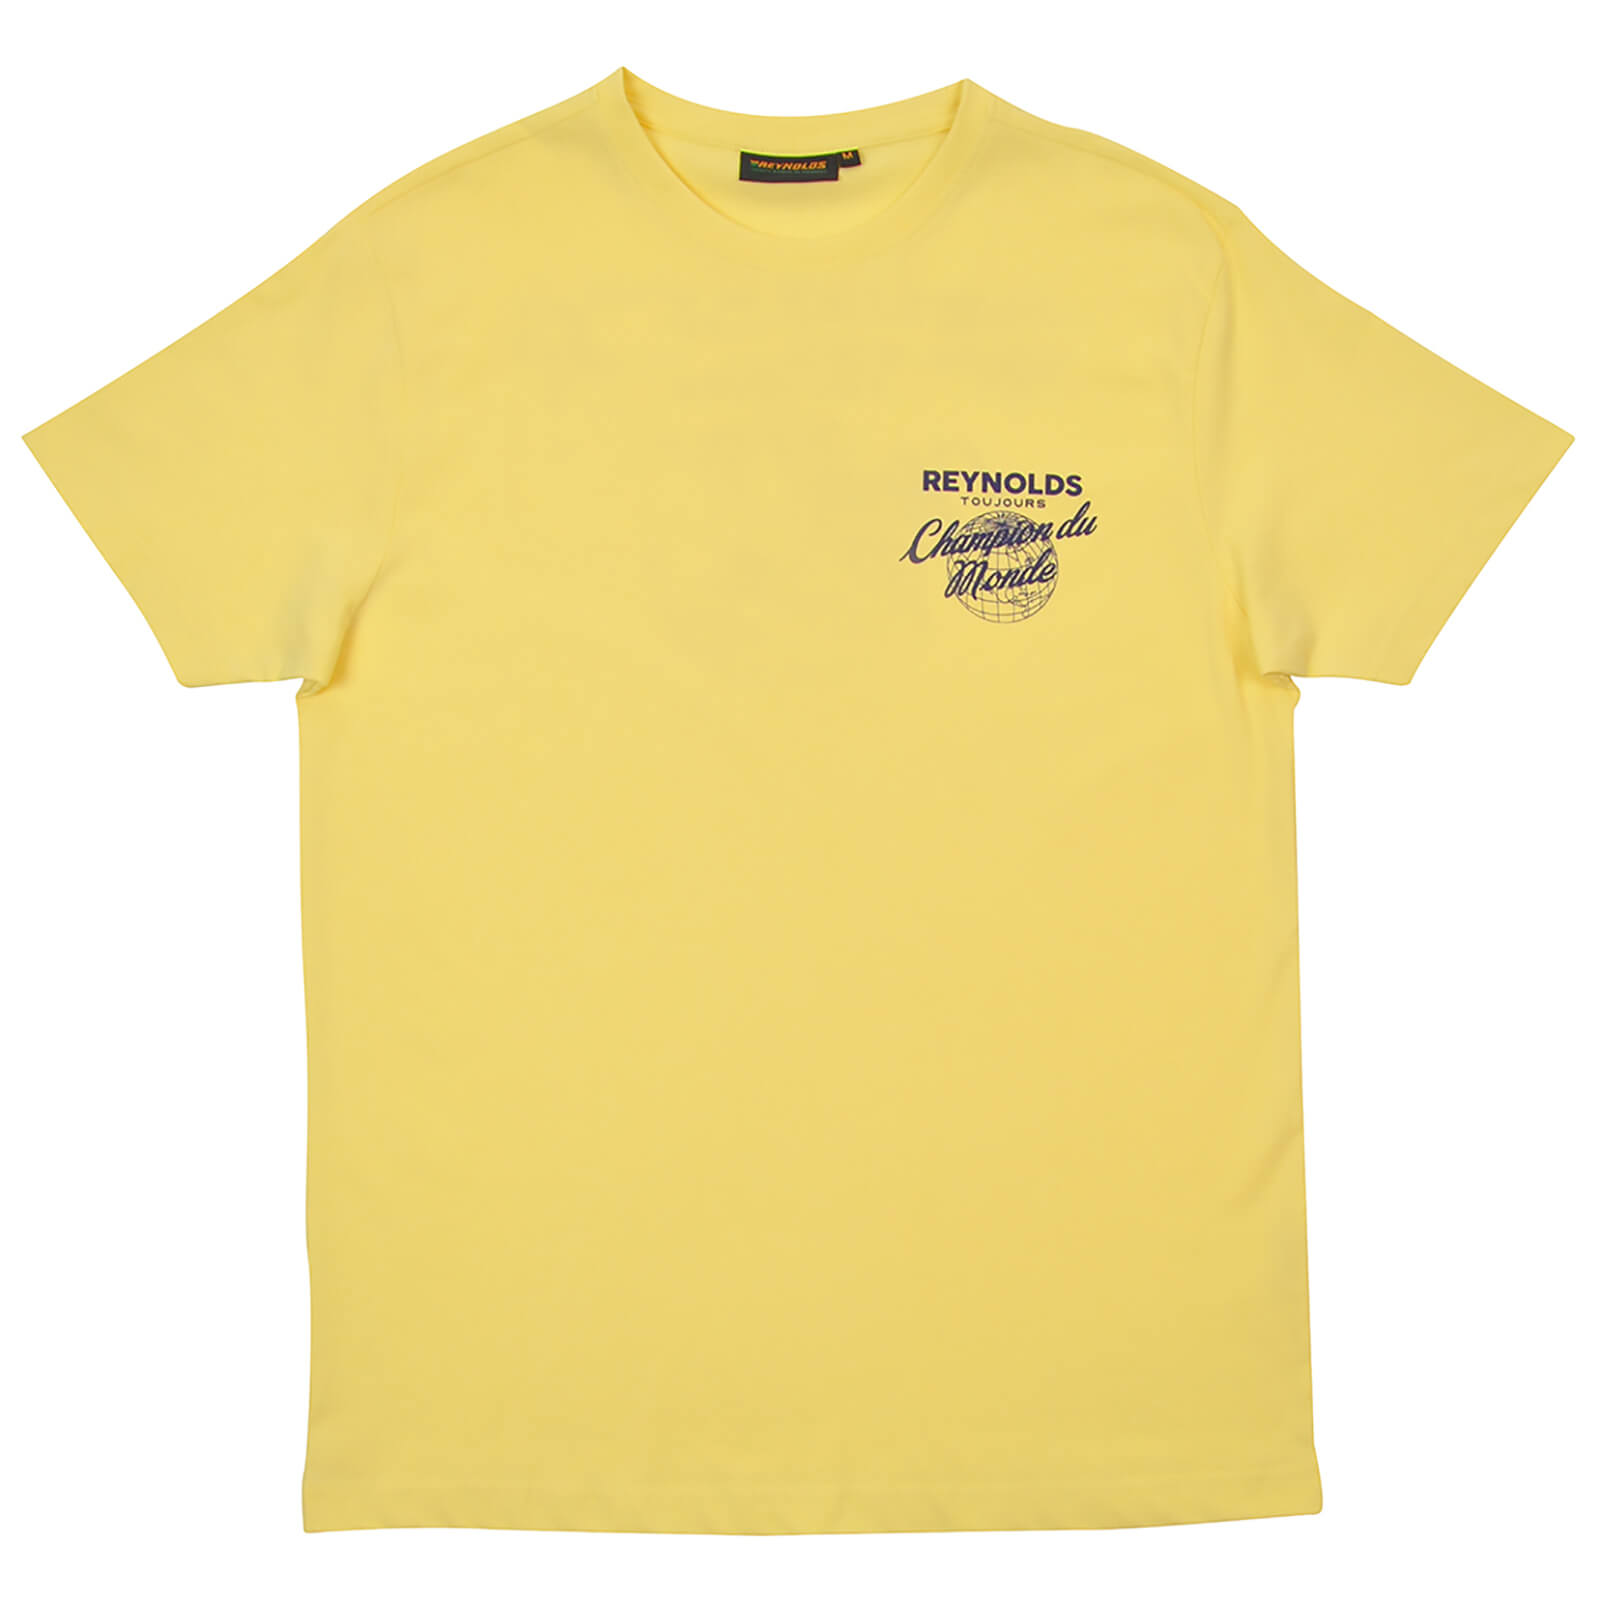 Reynolds Champion Du Monde T-Shirt - Yellow | Trøjer